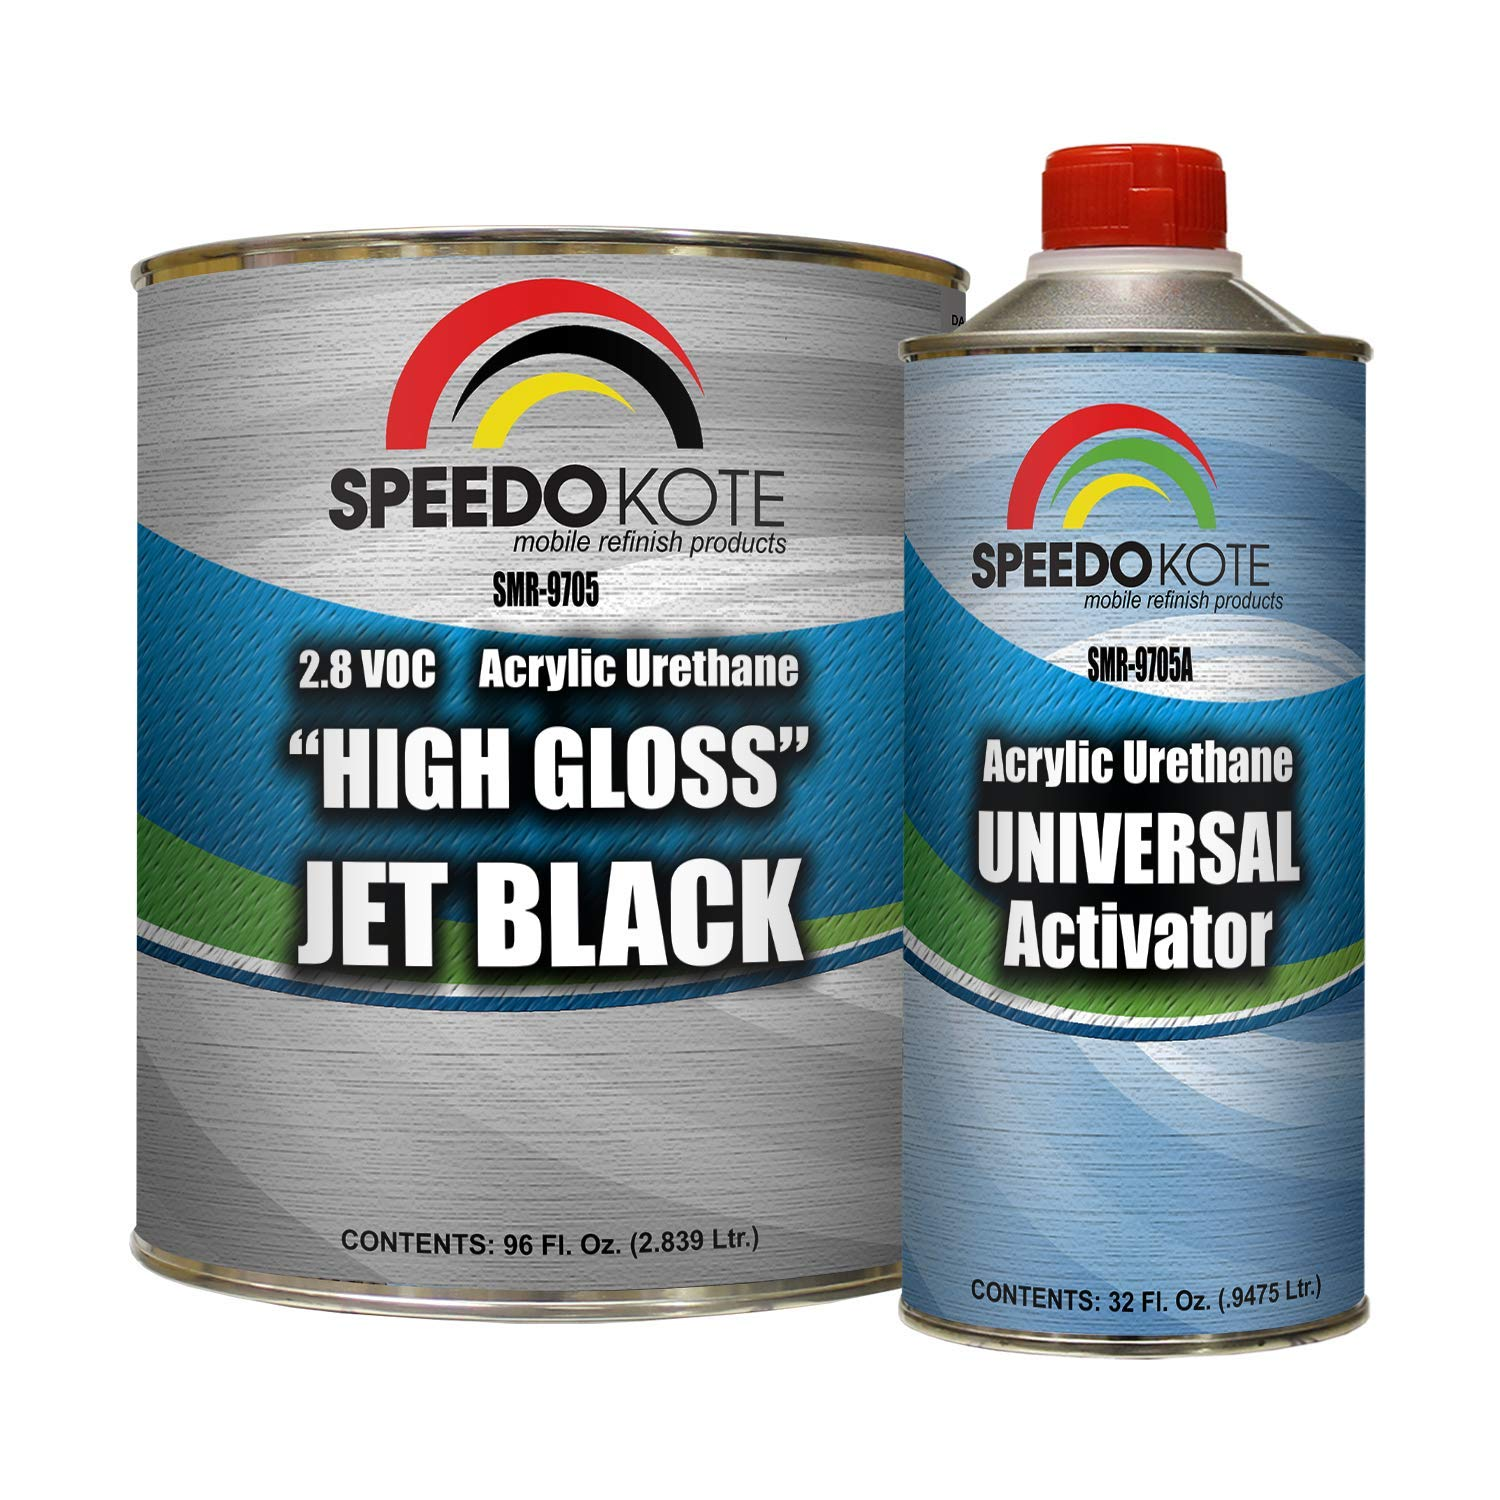 Speedokote High Gloss Jet Black 2K Acrylic Urethane, 3:1 Gallon Kit w/Activator, SMR-9705-M by Speedokote